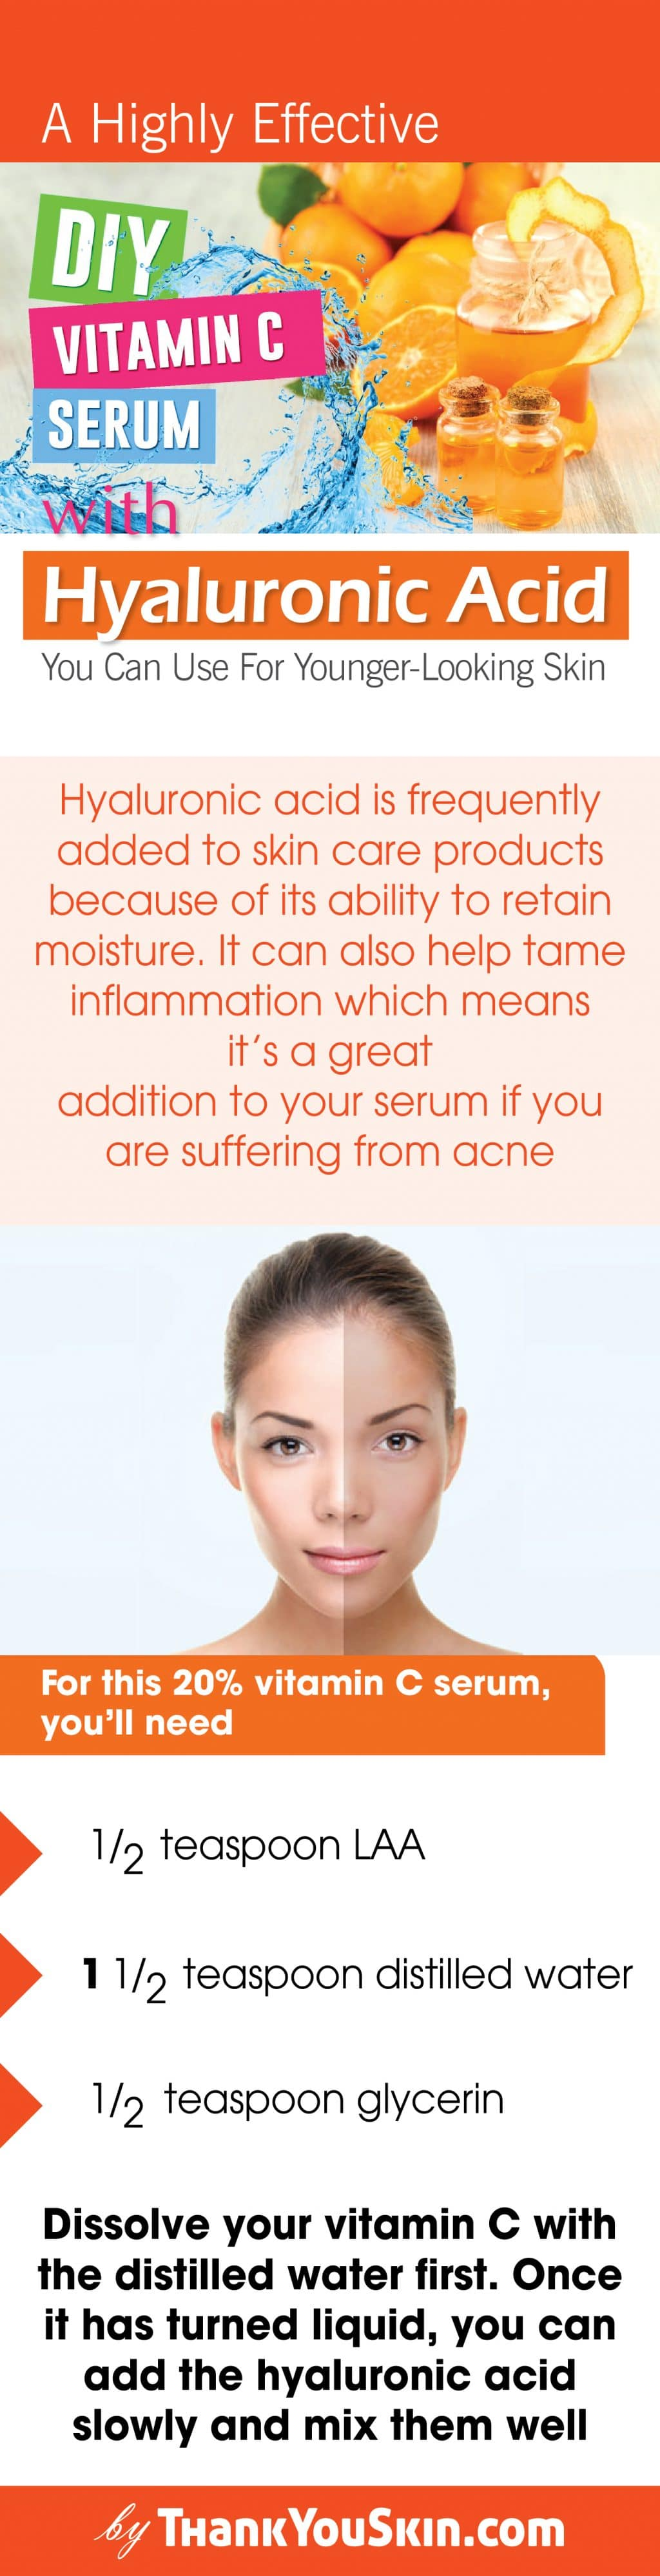 Diy vitamin c serum that actually works diy vitamin c serum solutioingenieria Images